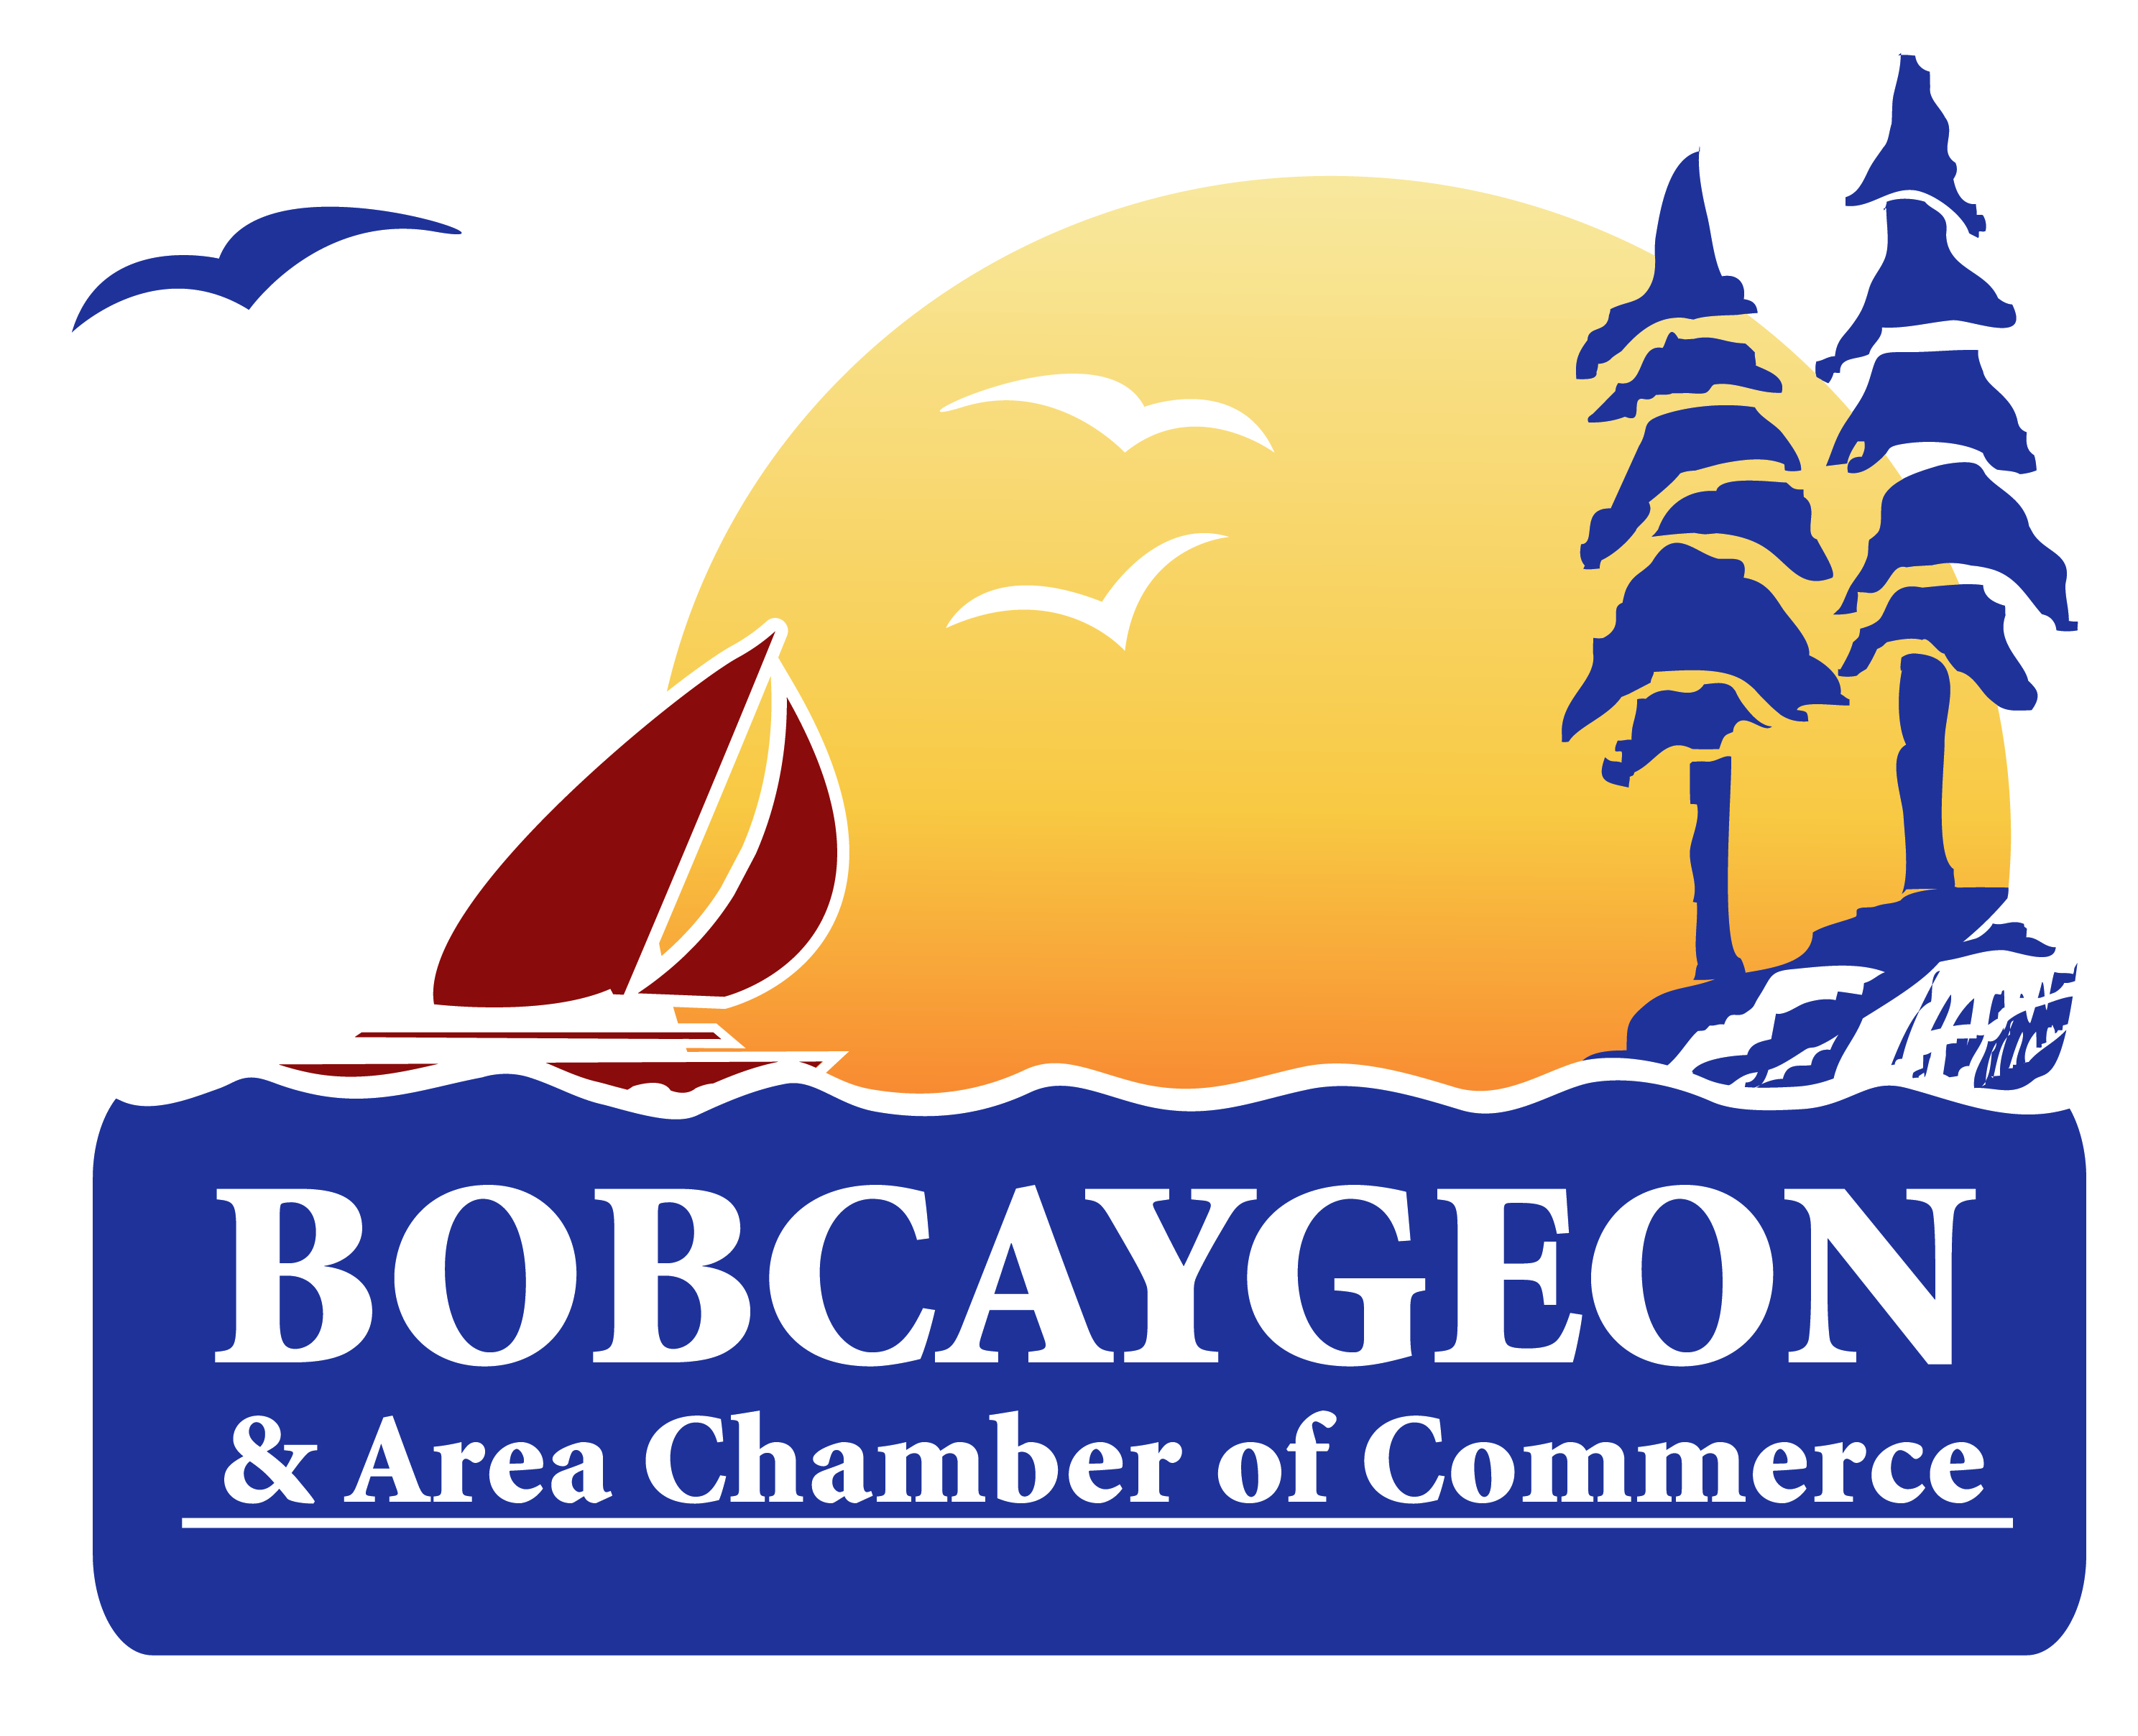 Bobcaygeon chamber of commerce for Chamber of commerce